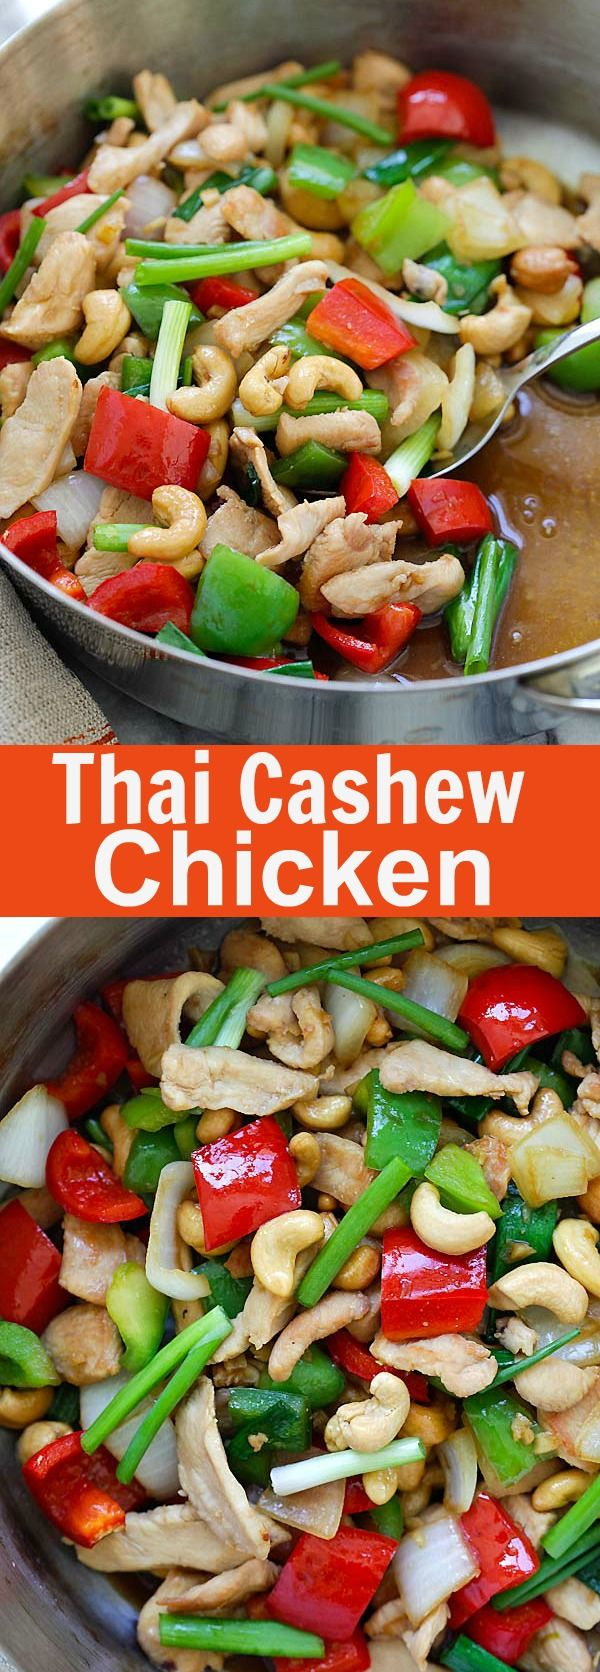 Thai Cashew Chicken – best Thai chicken stir-fry with cashew nuts and bell peppers. So easy to make, takes 20 mins and much better than restaurants | rasamalaysia.com